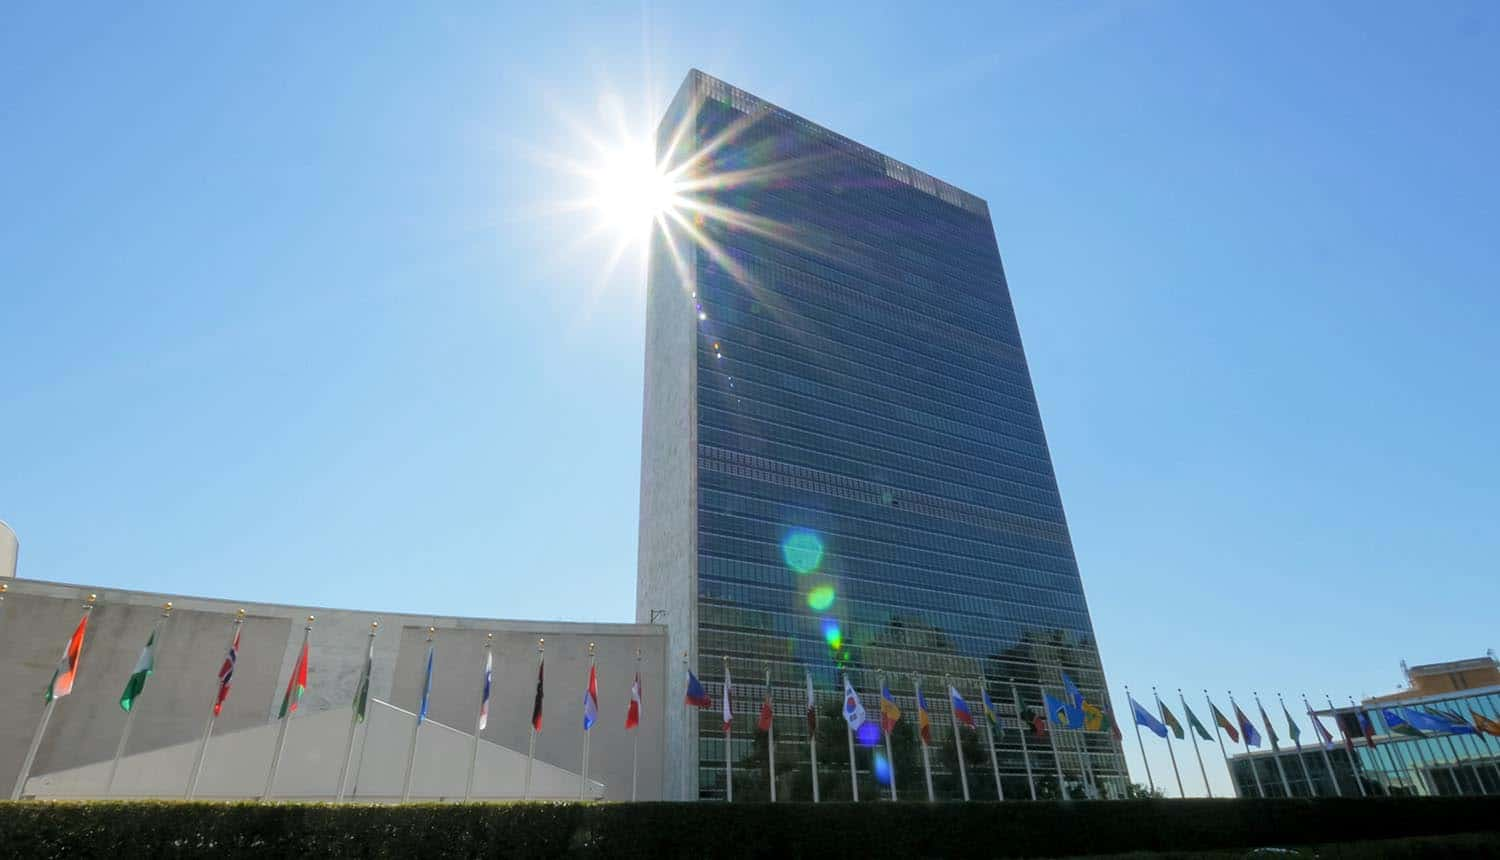 Sun shining behind United Nations building showing data breach